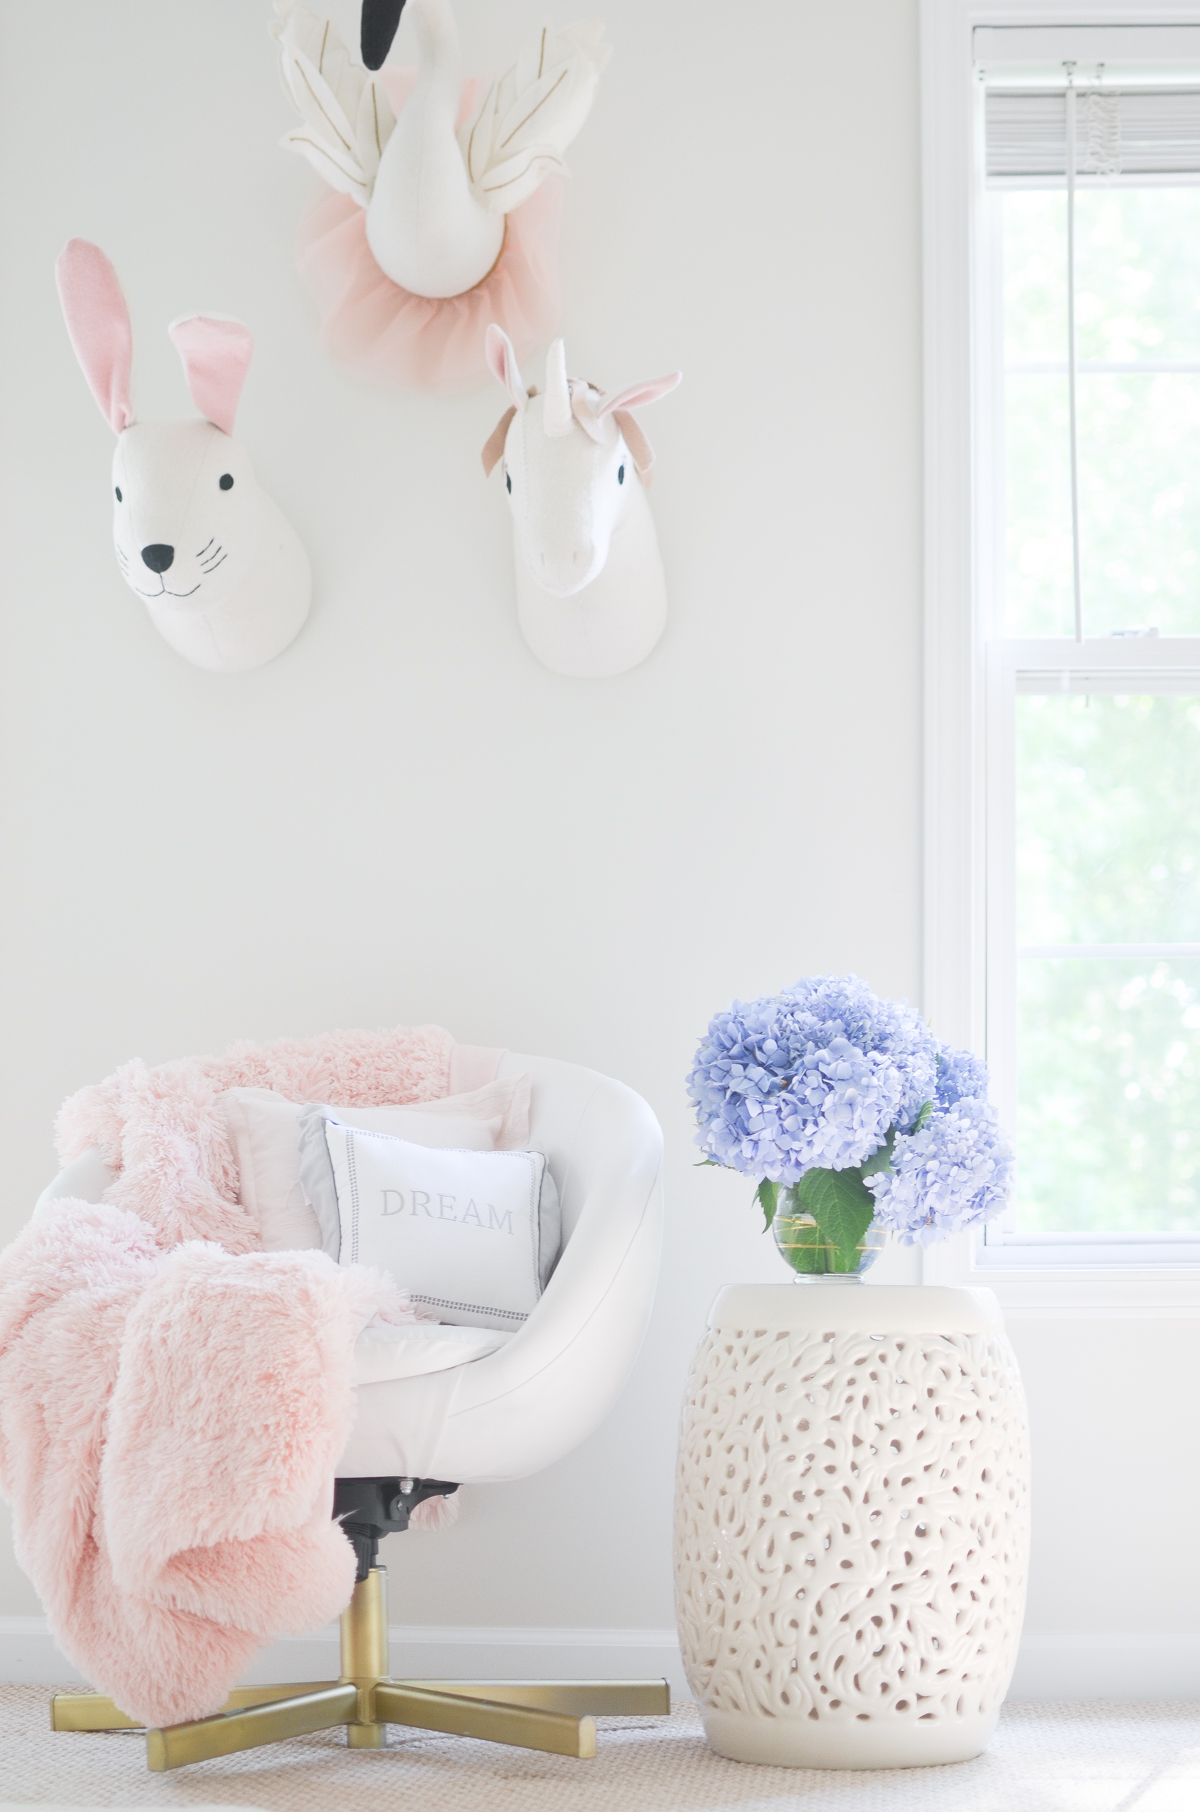 Pink and White Dream Girly Nursery Ideas Decorations Inspiration